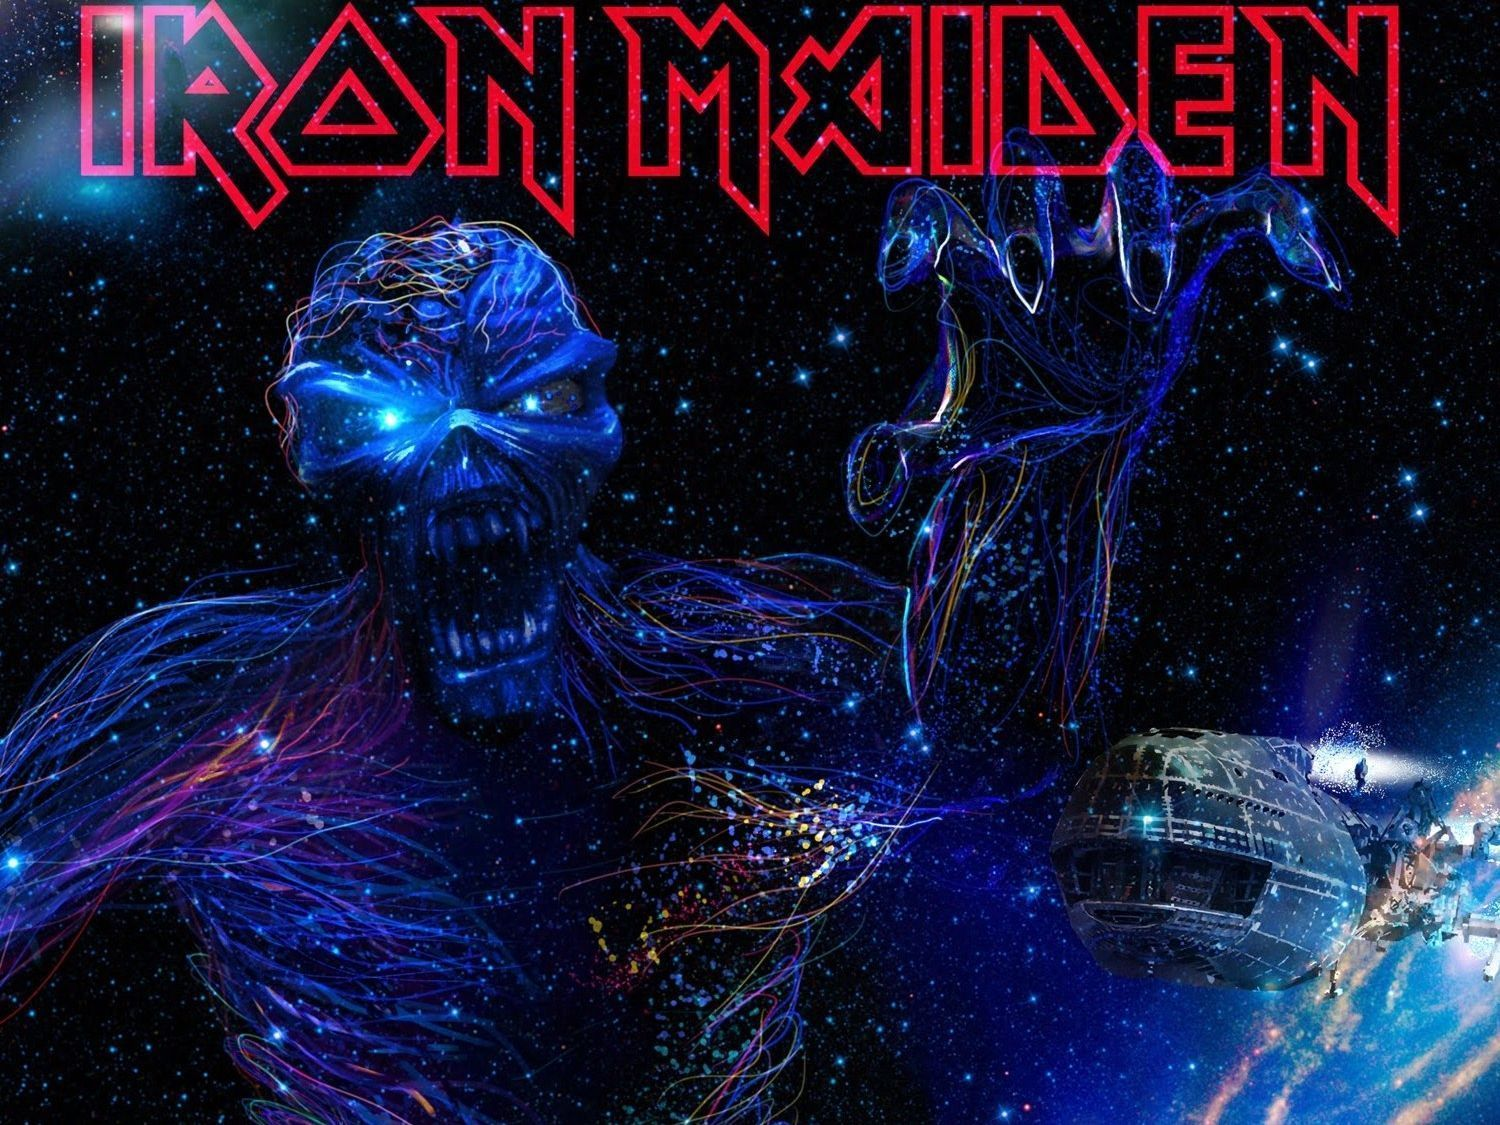 30 Iron Maiden Wallpaper By Eddy Cutts Freshwallpaperszone Com